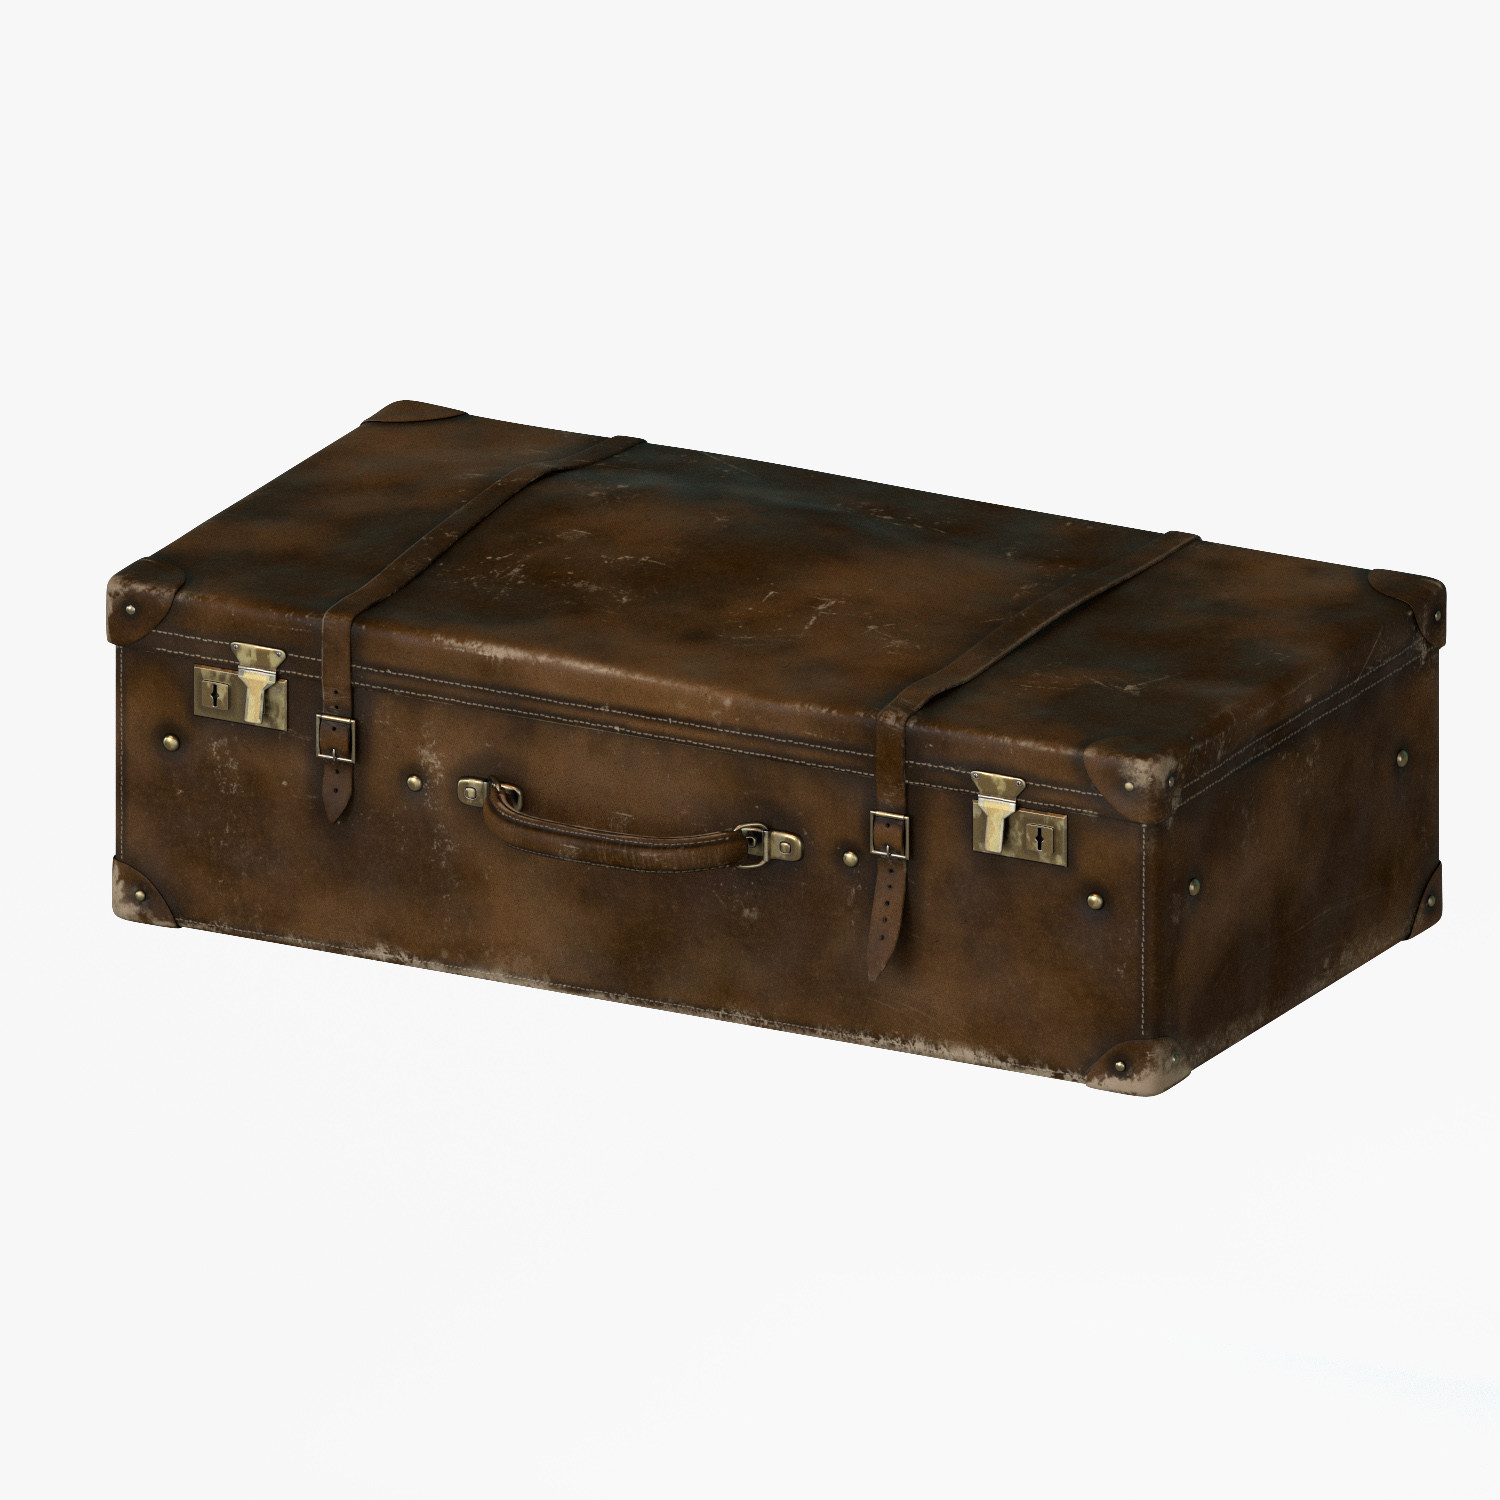 00020_Business_Suitcase_01_Preview-01_247BG.jpg